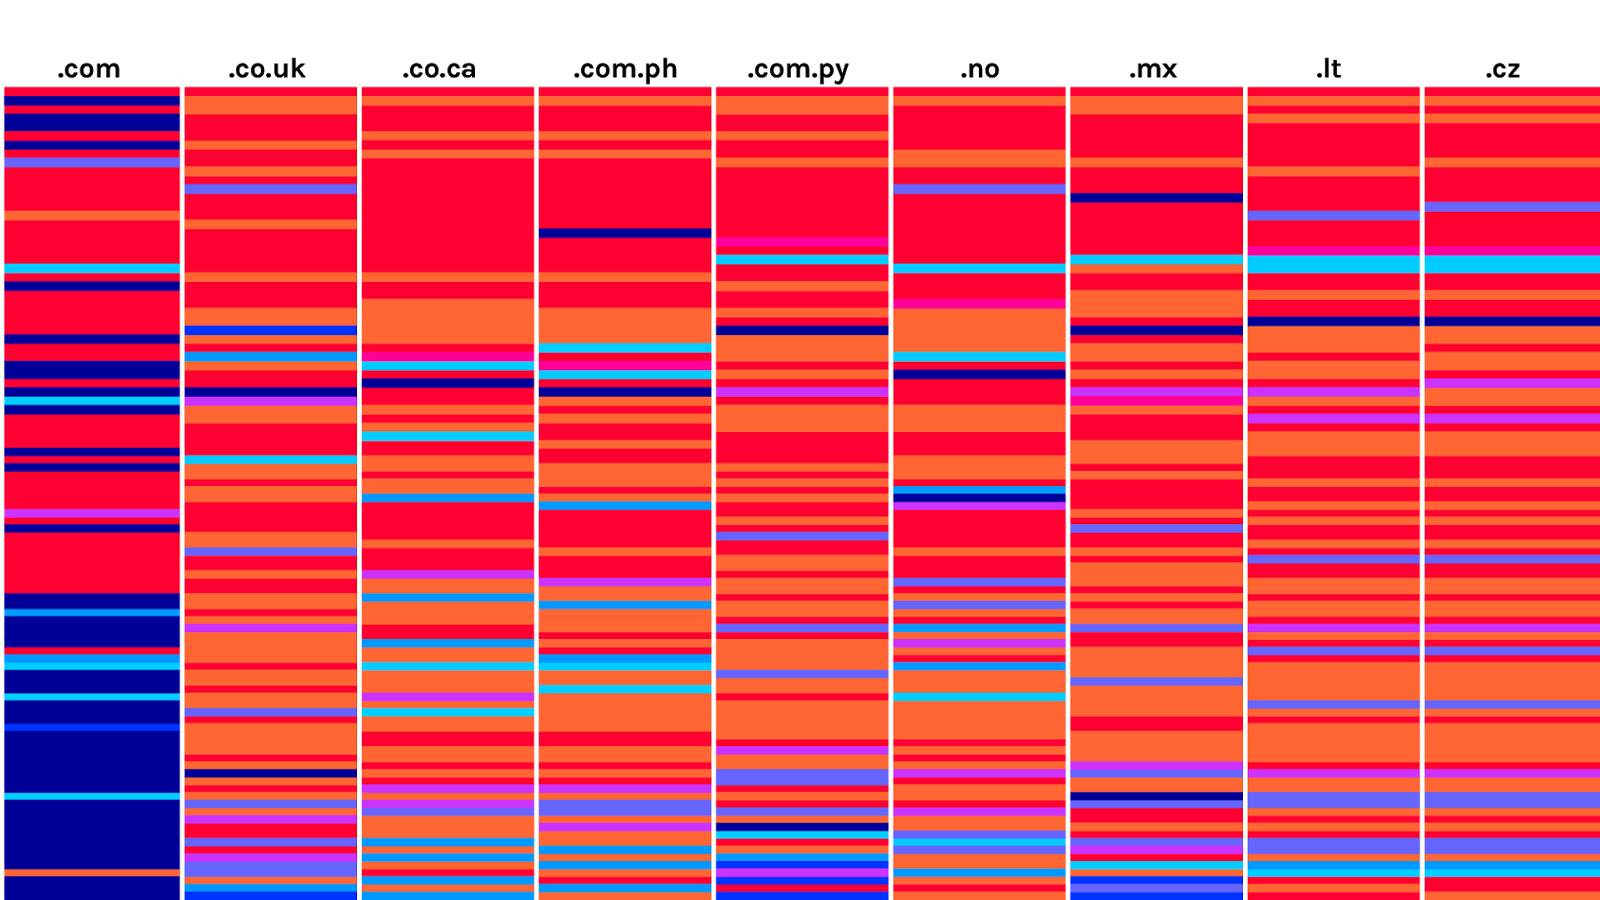 Lists colored by frequency, original order-02-02.png